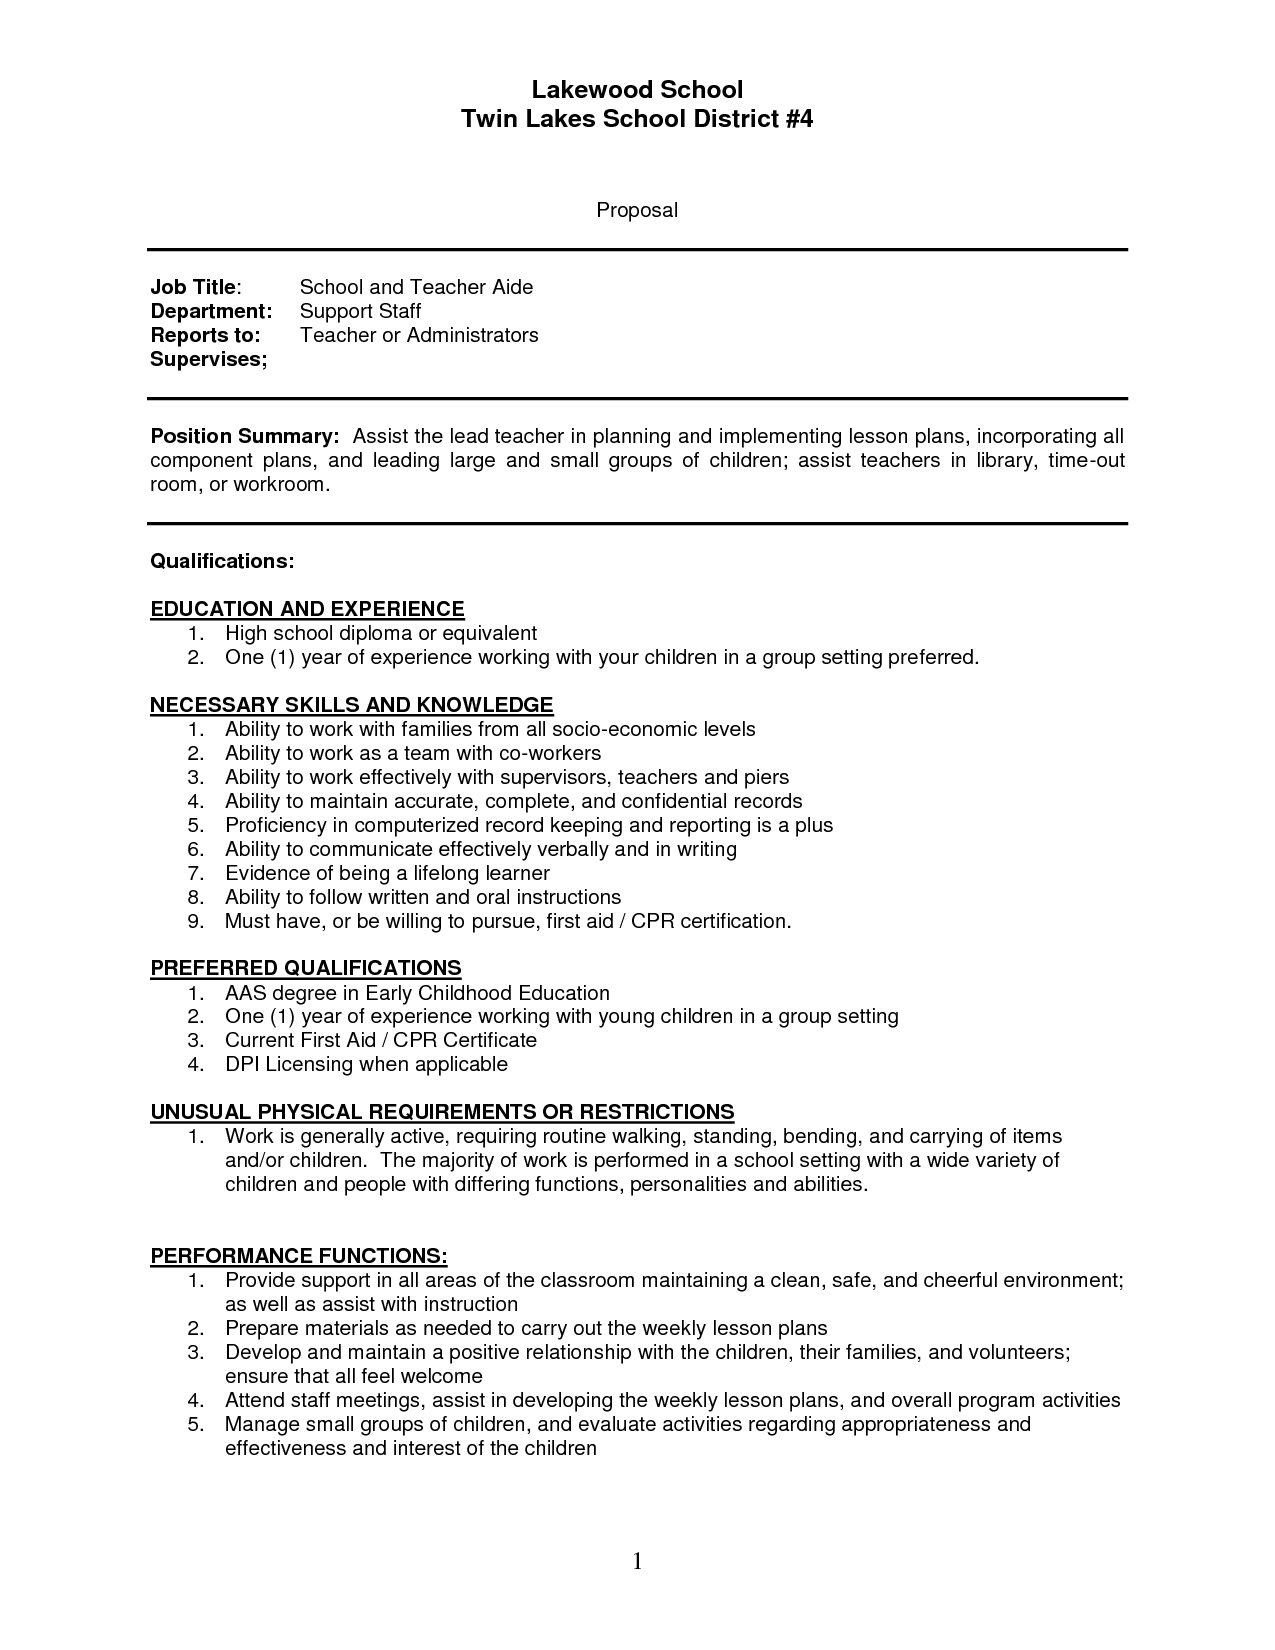 Perfect Teacher Assistant Sample Resume Sample Resume Of Teachers Aides ...   Resume  For Teacher Within Teachers Aide Resume